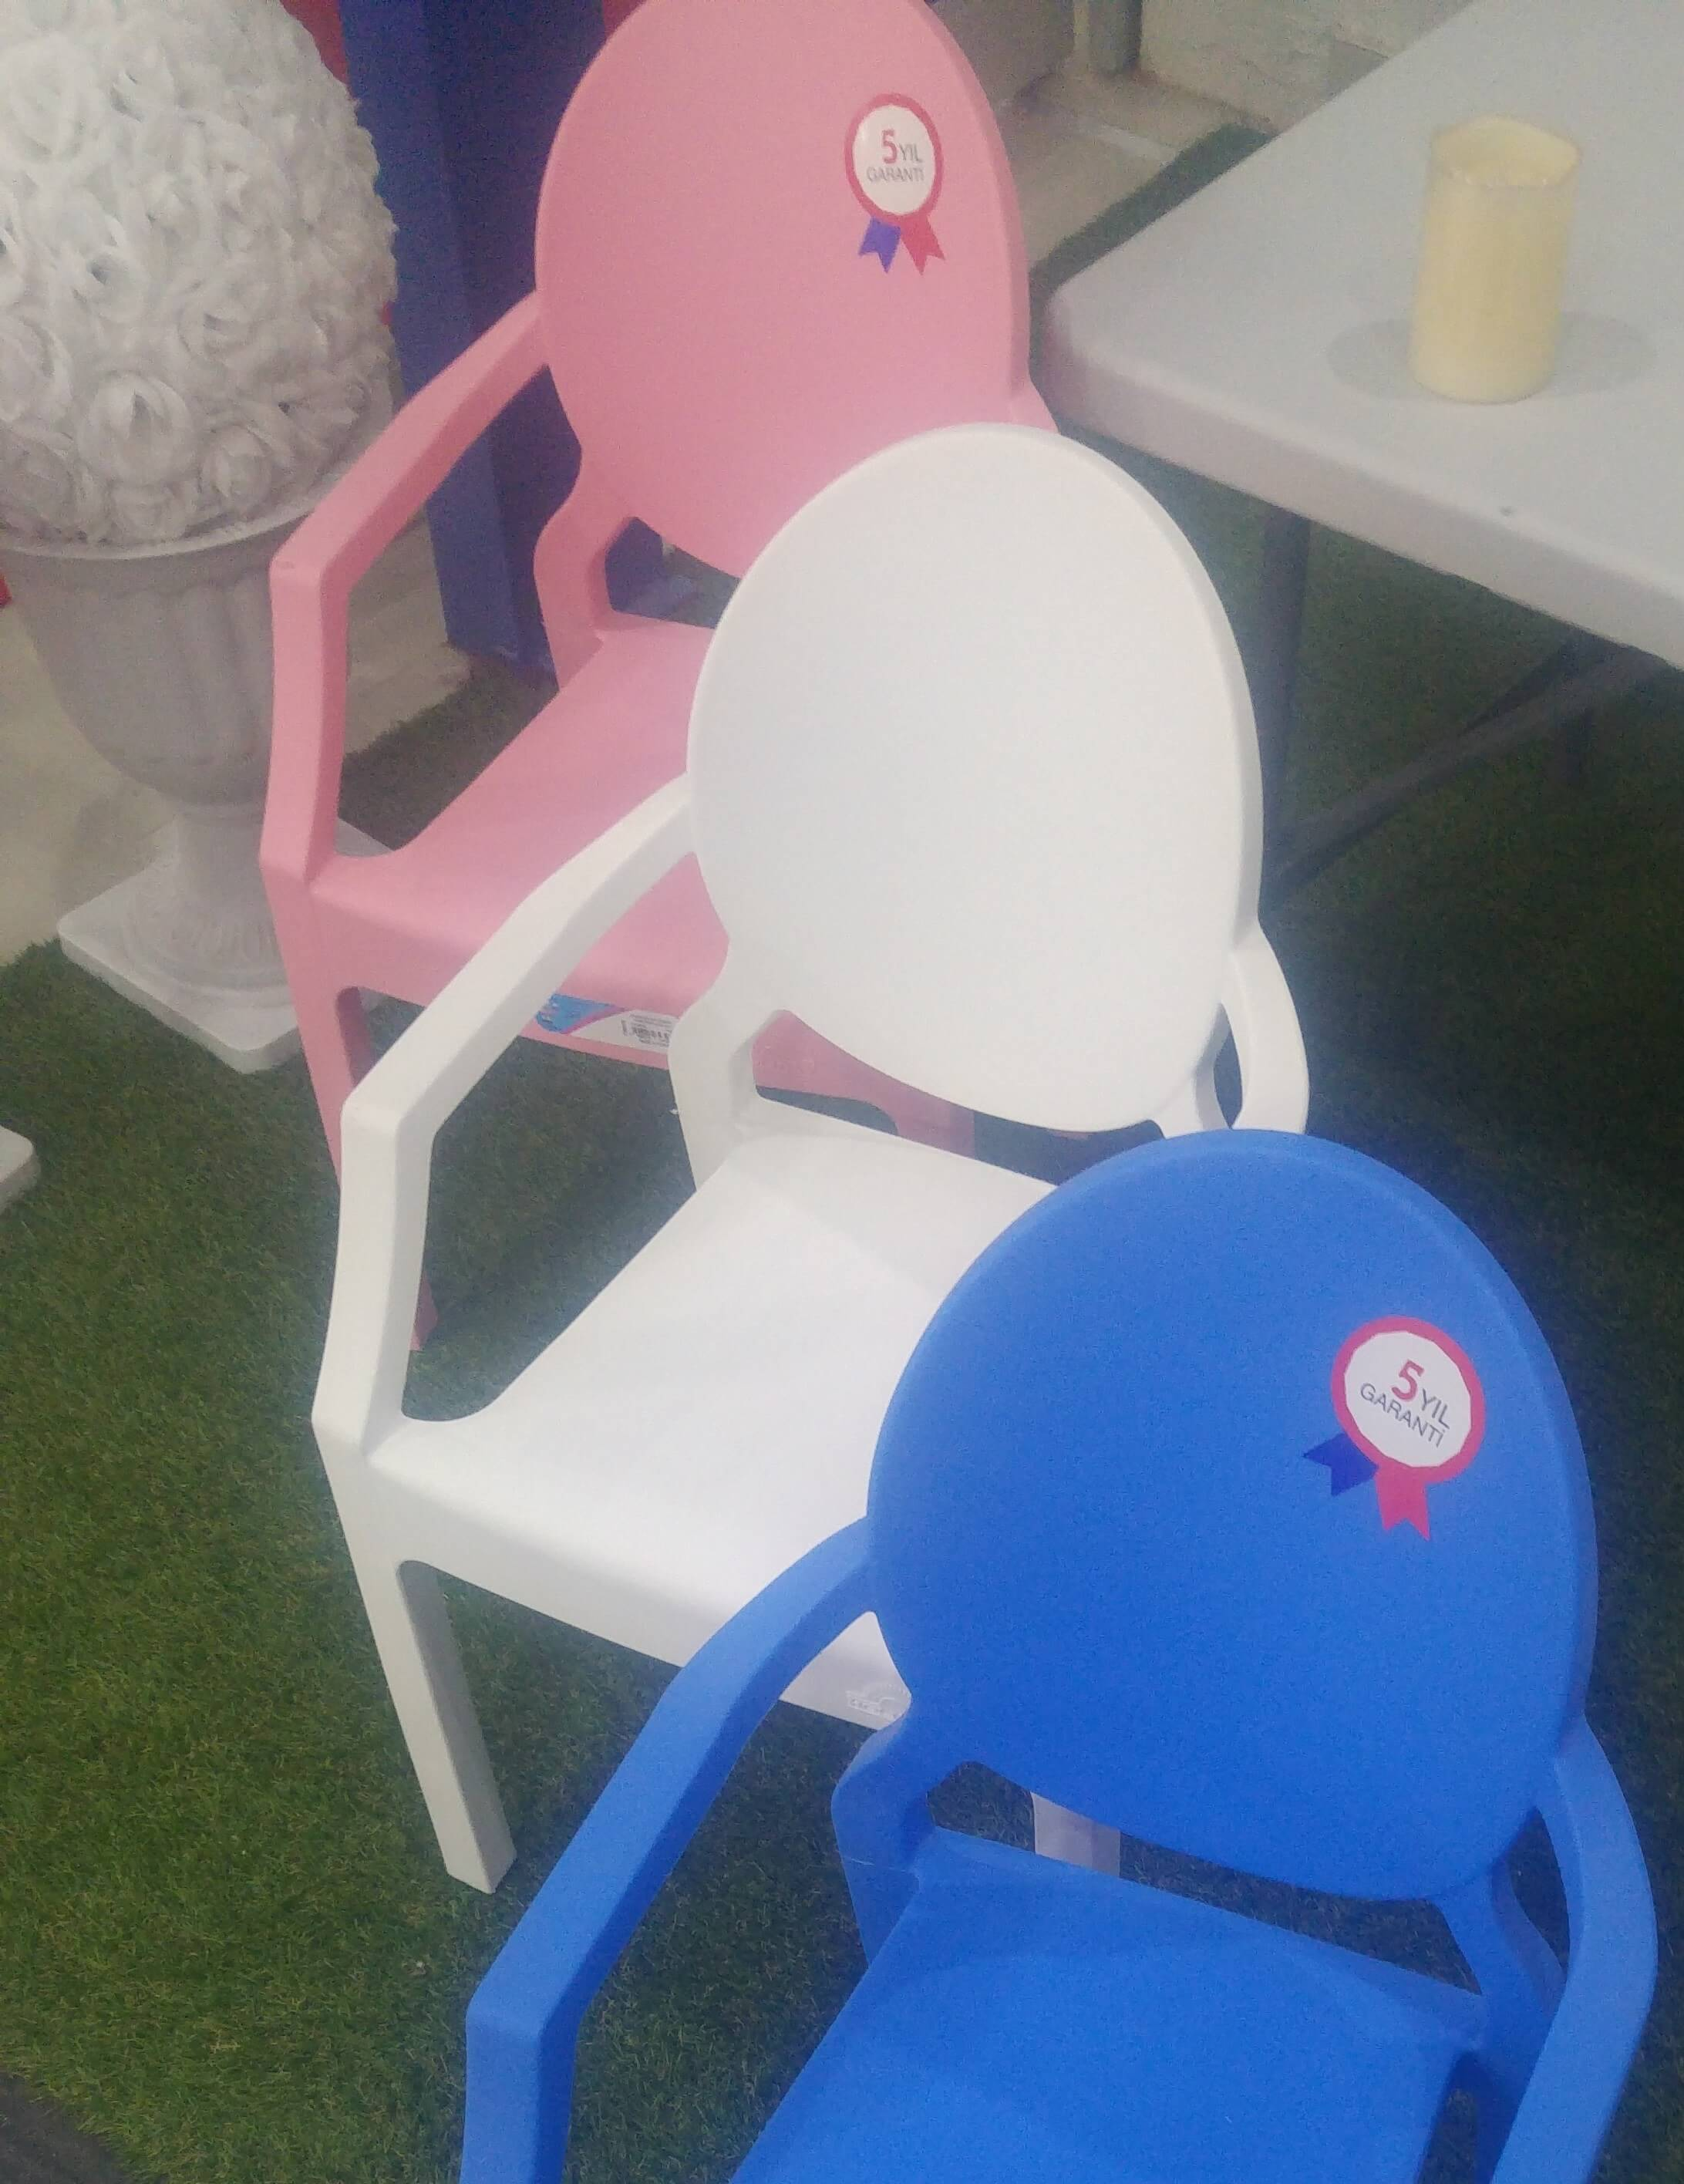 kiddies chair covers for sale in durban recliner gaming party decor ghost chairs kids